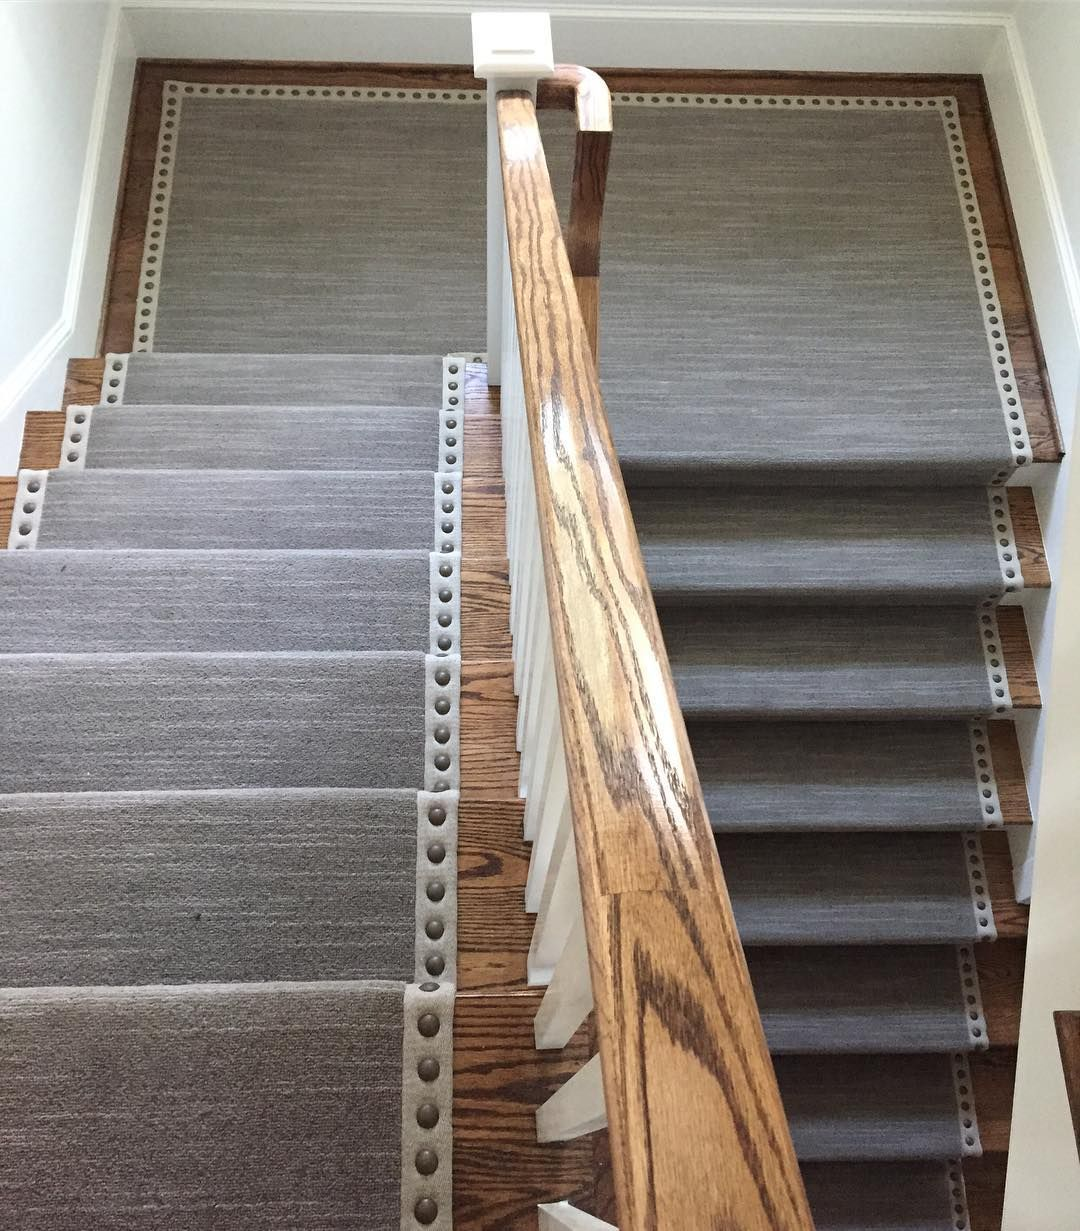 Mnailheads Add An Elegance To This Stair Runner And Edge